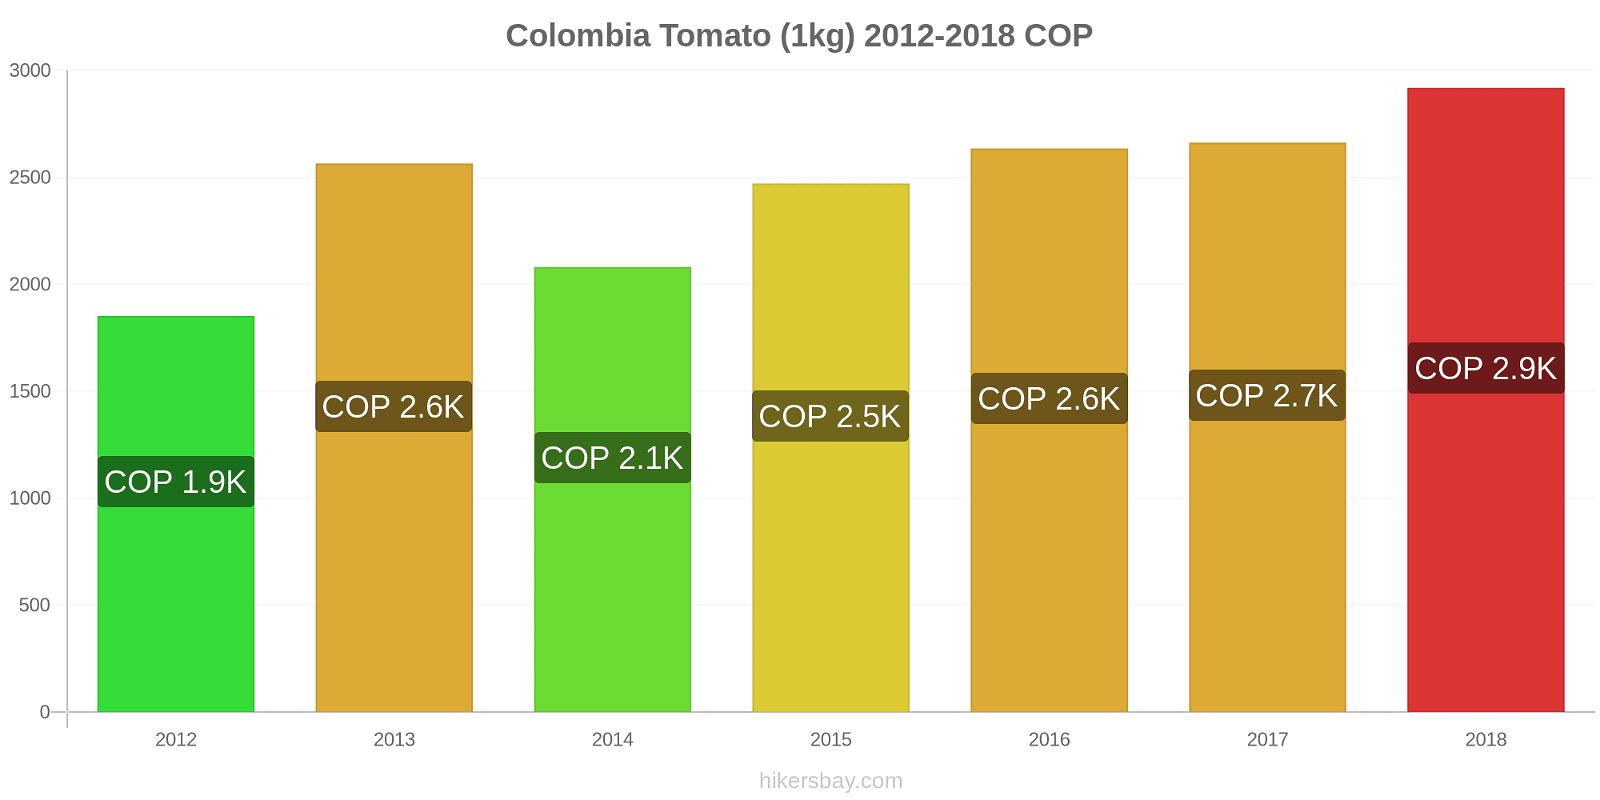 Colombia price changes Tomato (1kg) hikersbay.com